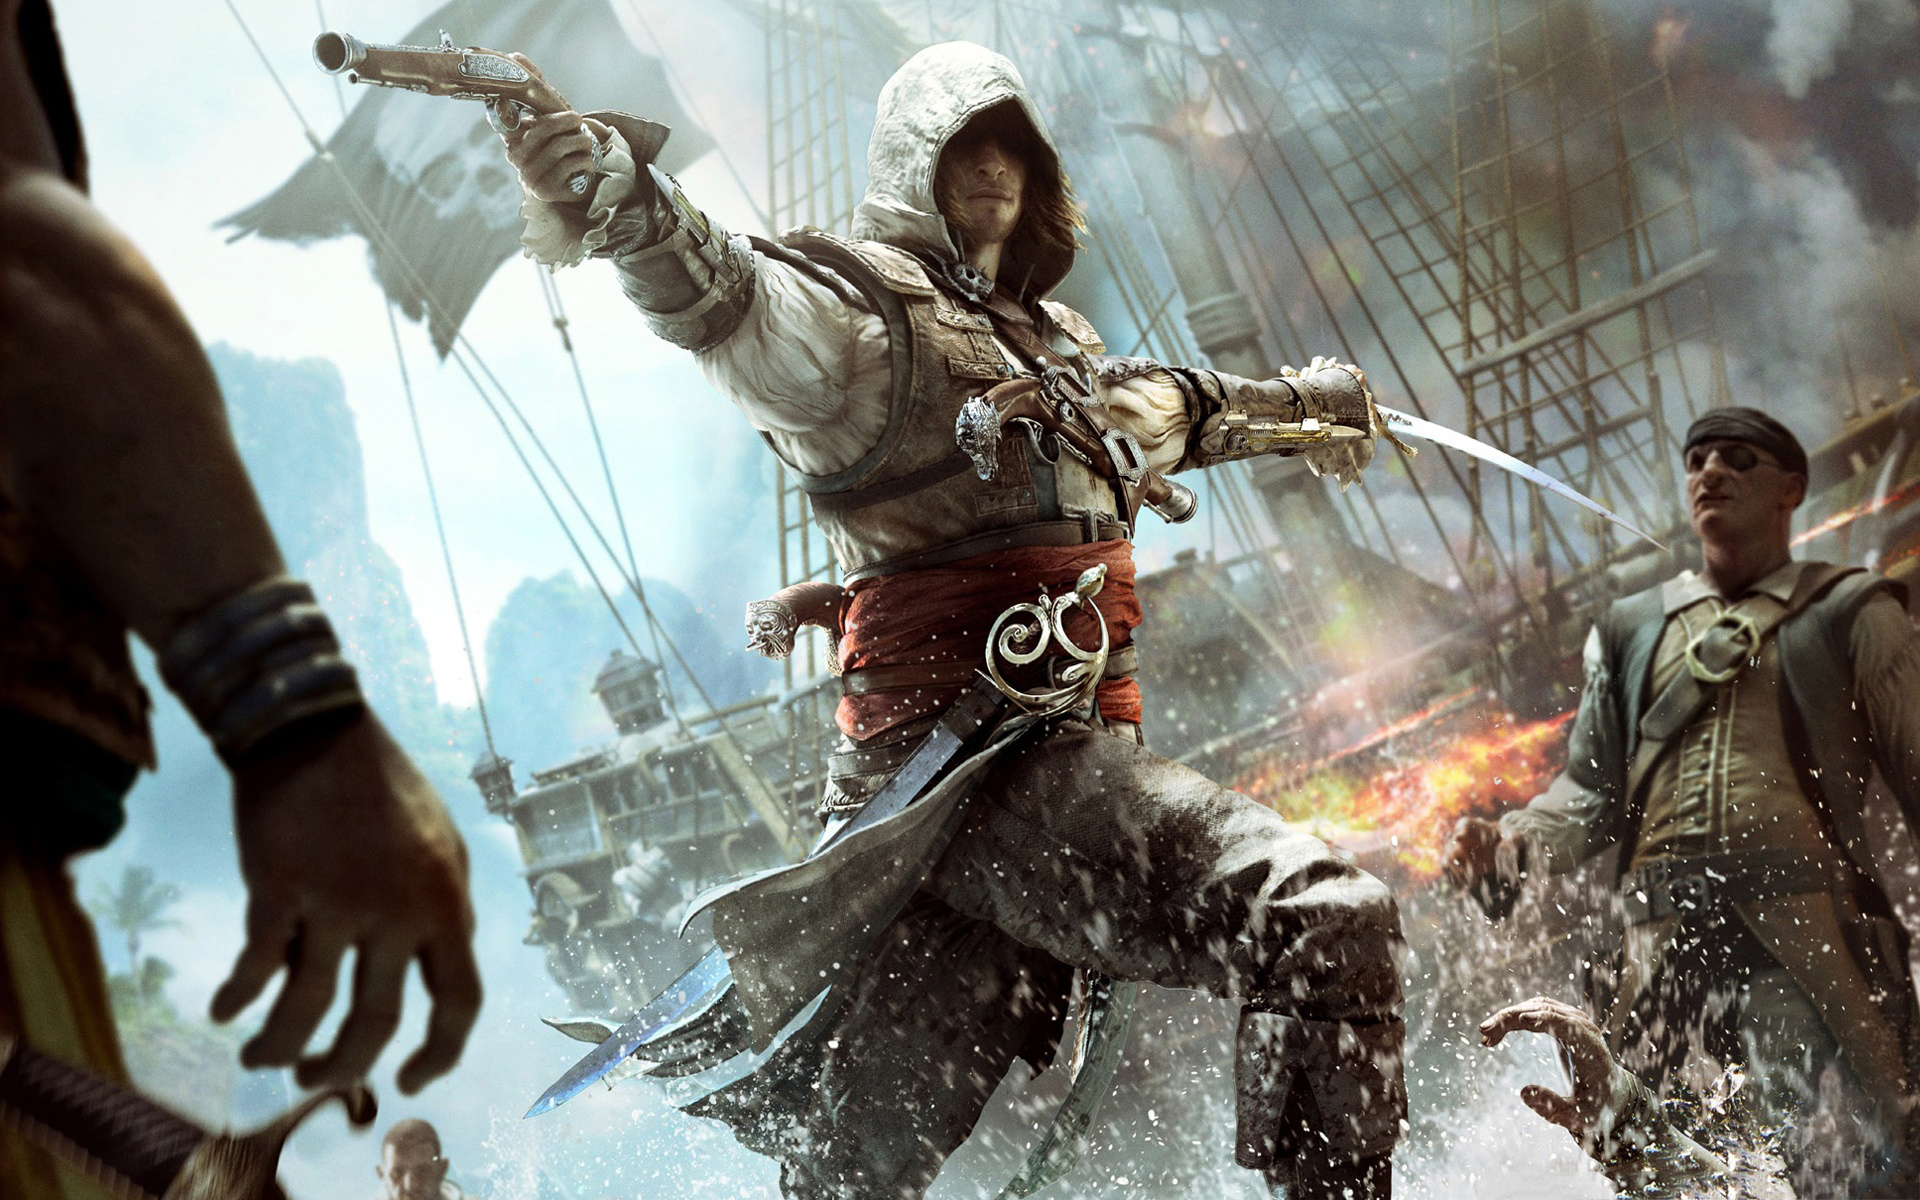 http://s3.picofile.com/file/7979494836/assassins_creed_iv_black_flag.jpg